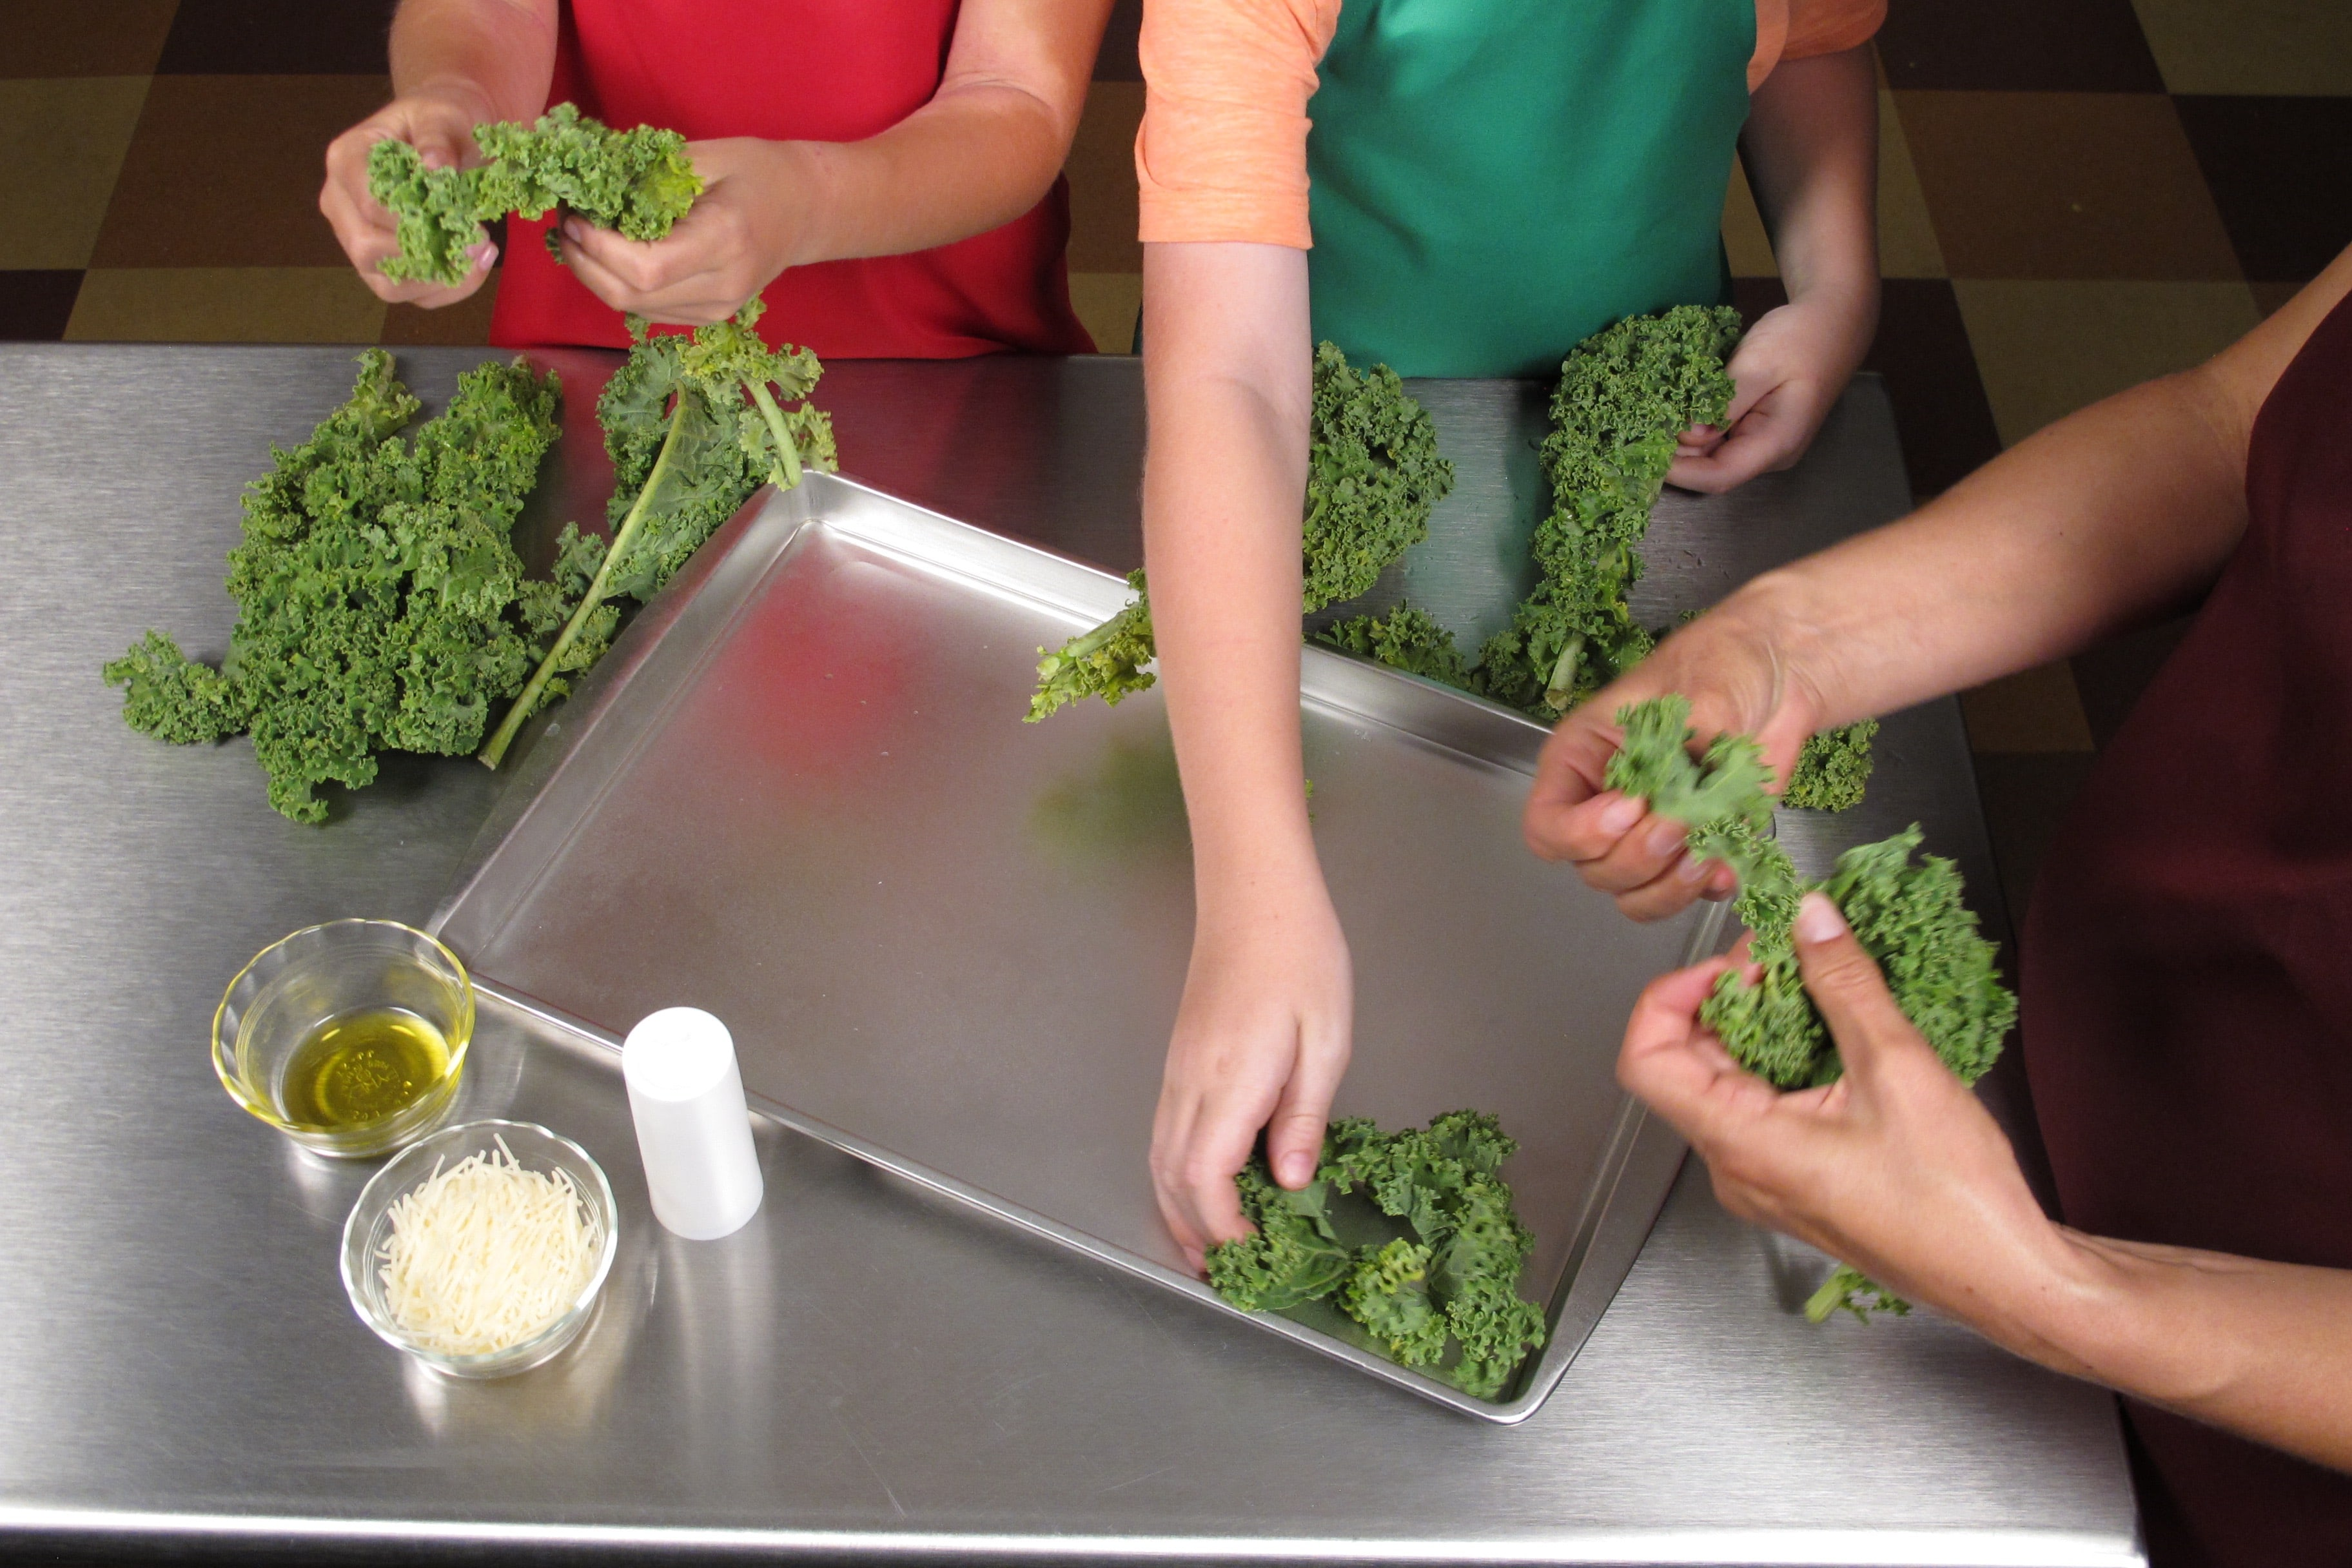 Carefully tear kale leaves from the thick stem. Tear into bite-sized pieces and place on baking sheet.